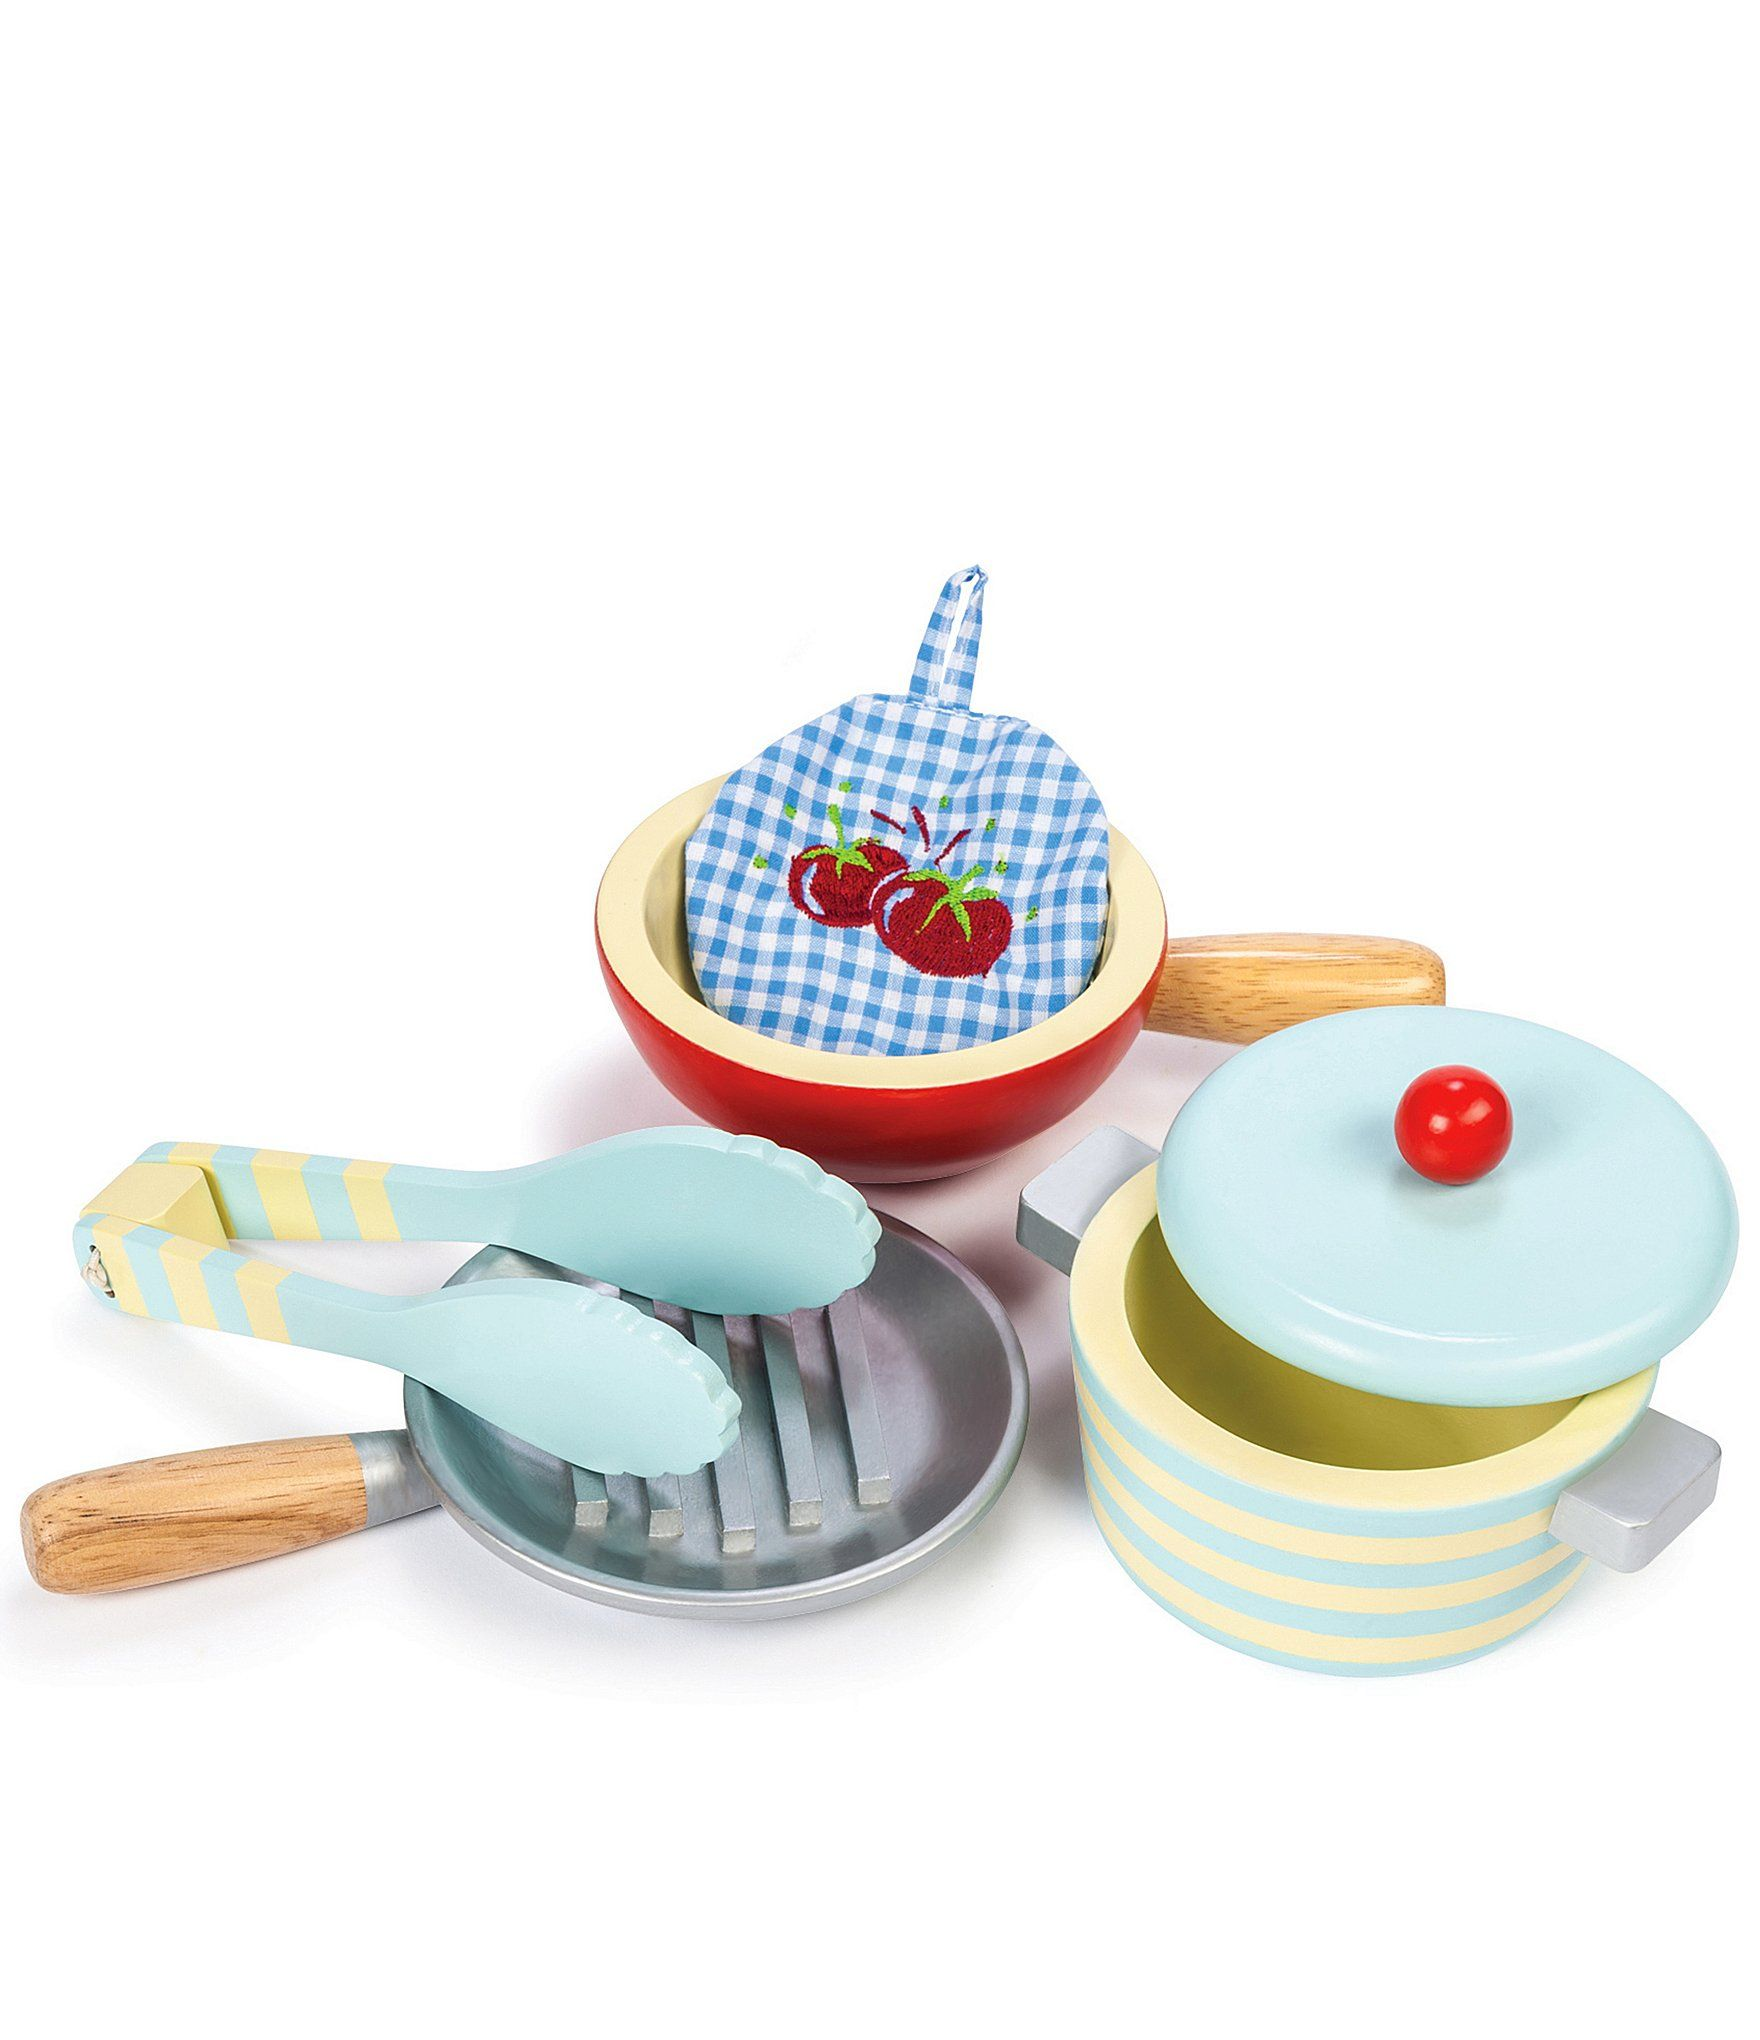 Le Toy Van Honeybake Pots And Pans Dillard S In 2020 Toy Kitchen Accessories Pots And Pans Sets Kids Wooden Kitchen